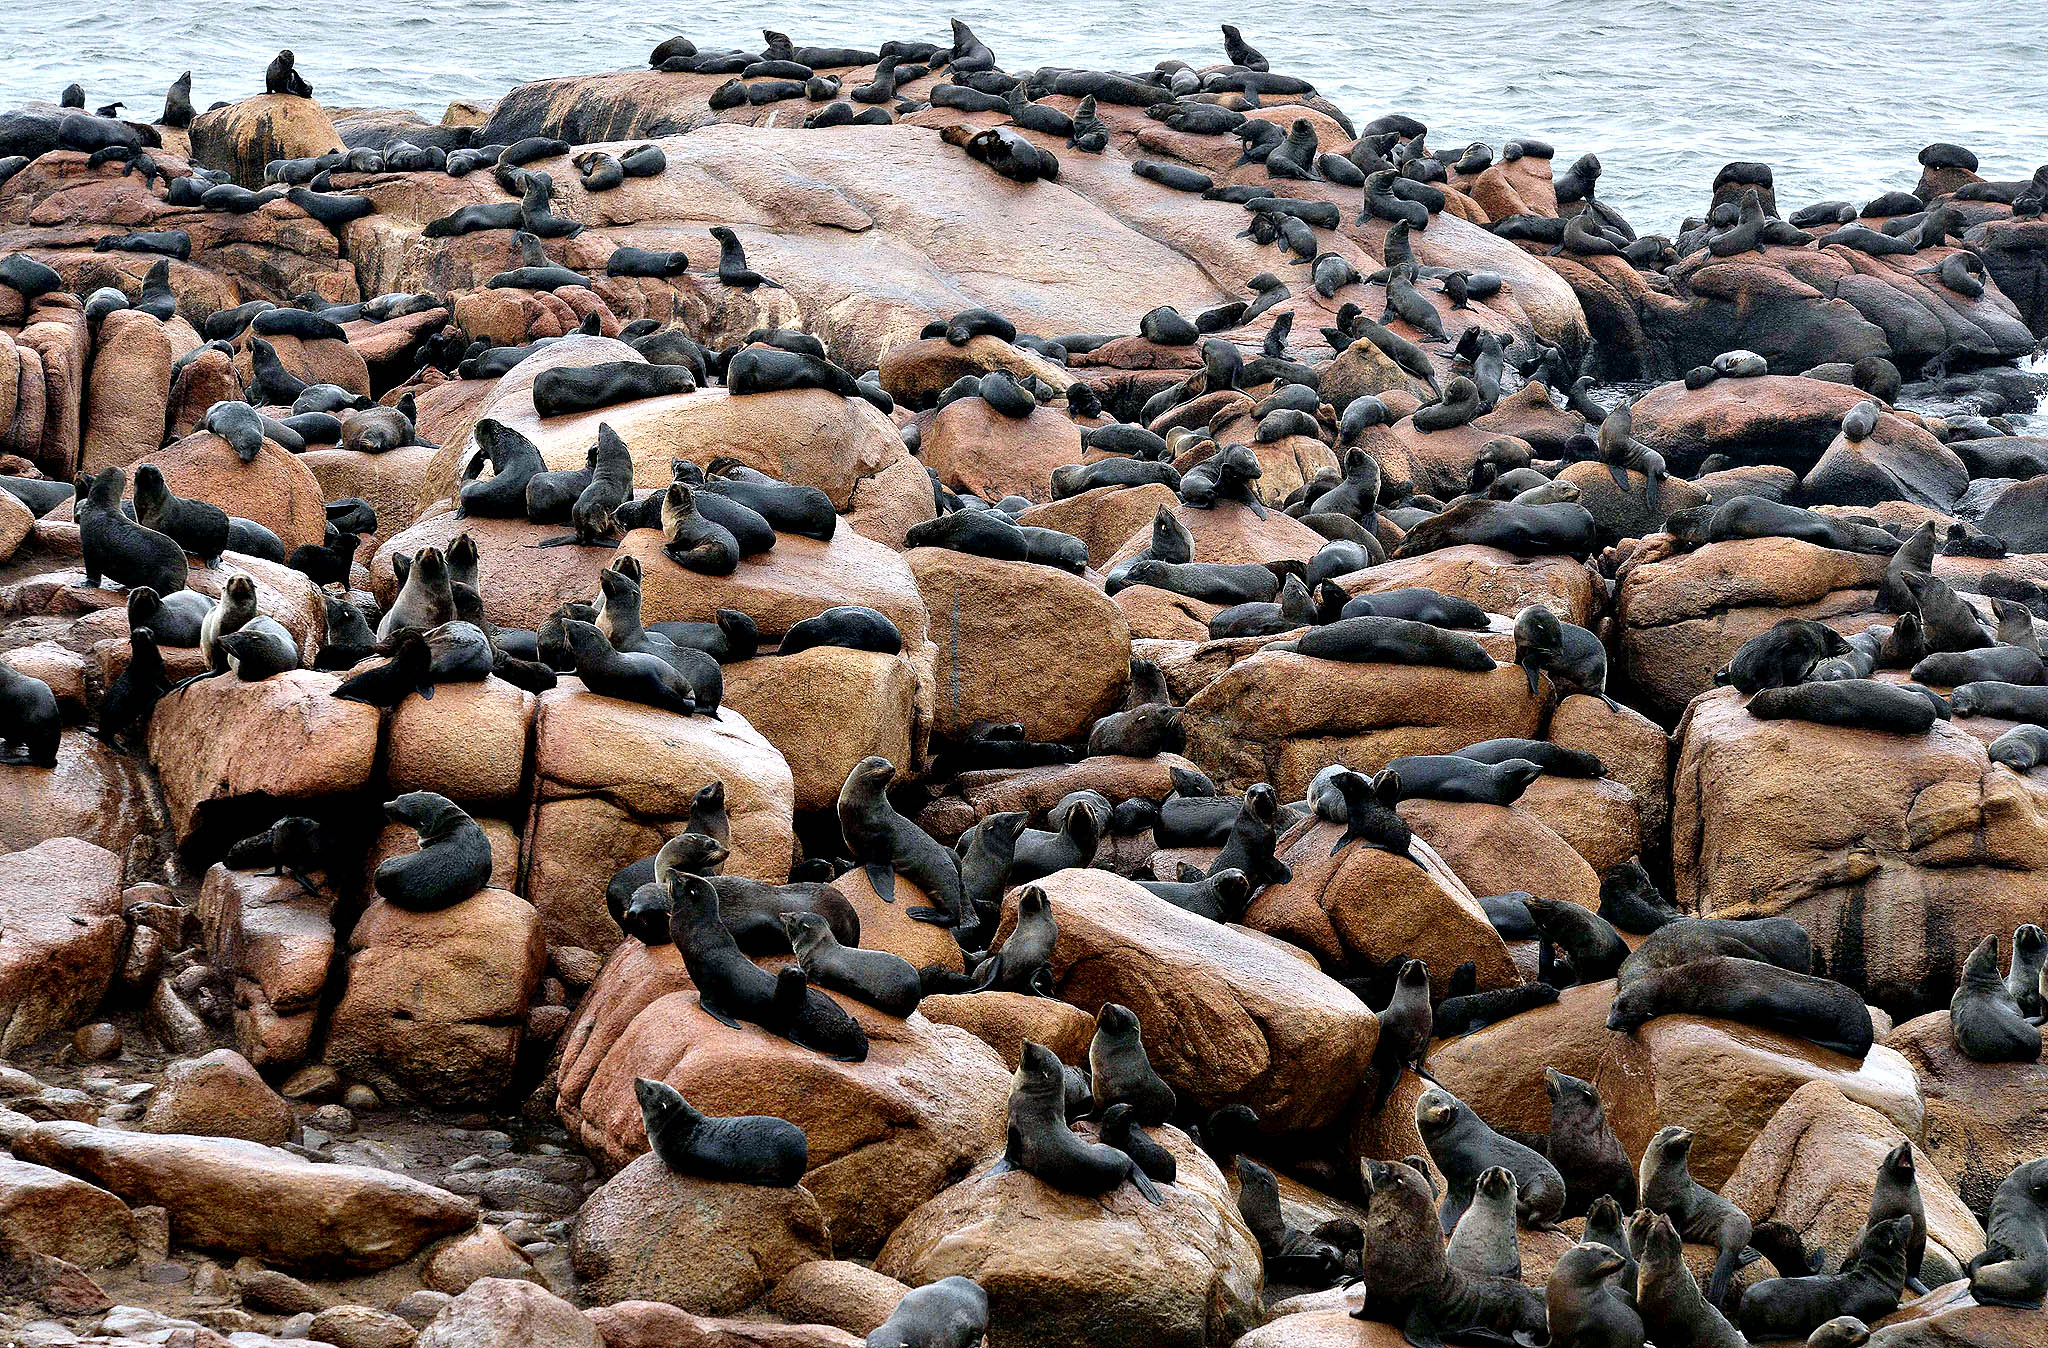 Fur seals rest at Isla de Lobos, a small island located about 8 km off the coast of Punta del Este, 140 km east of Montevideo, on March 19, 2014. A slaughterhouse operated in the island until 1991, and since then is the main reserve in South America to fur seals (Arctocephalus australis) and sea lions (Otaria flavescens).